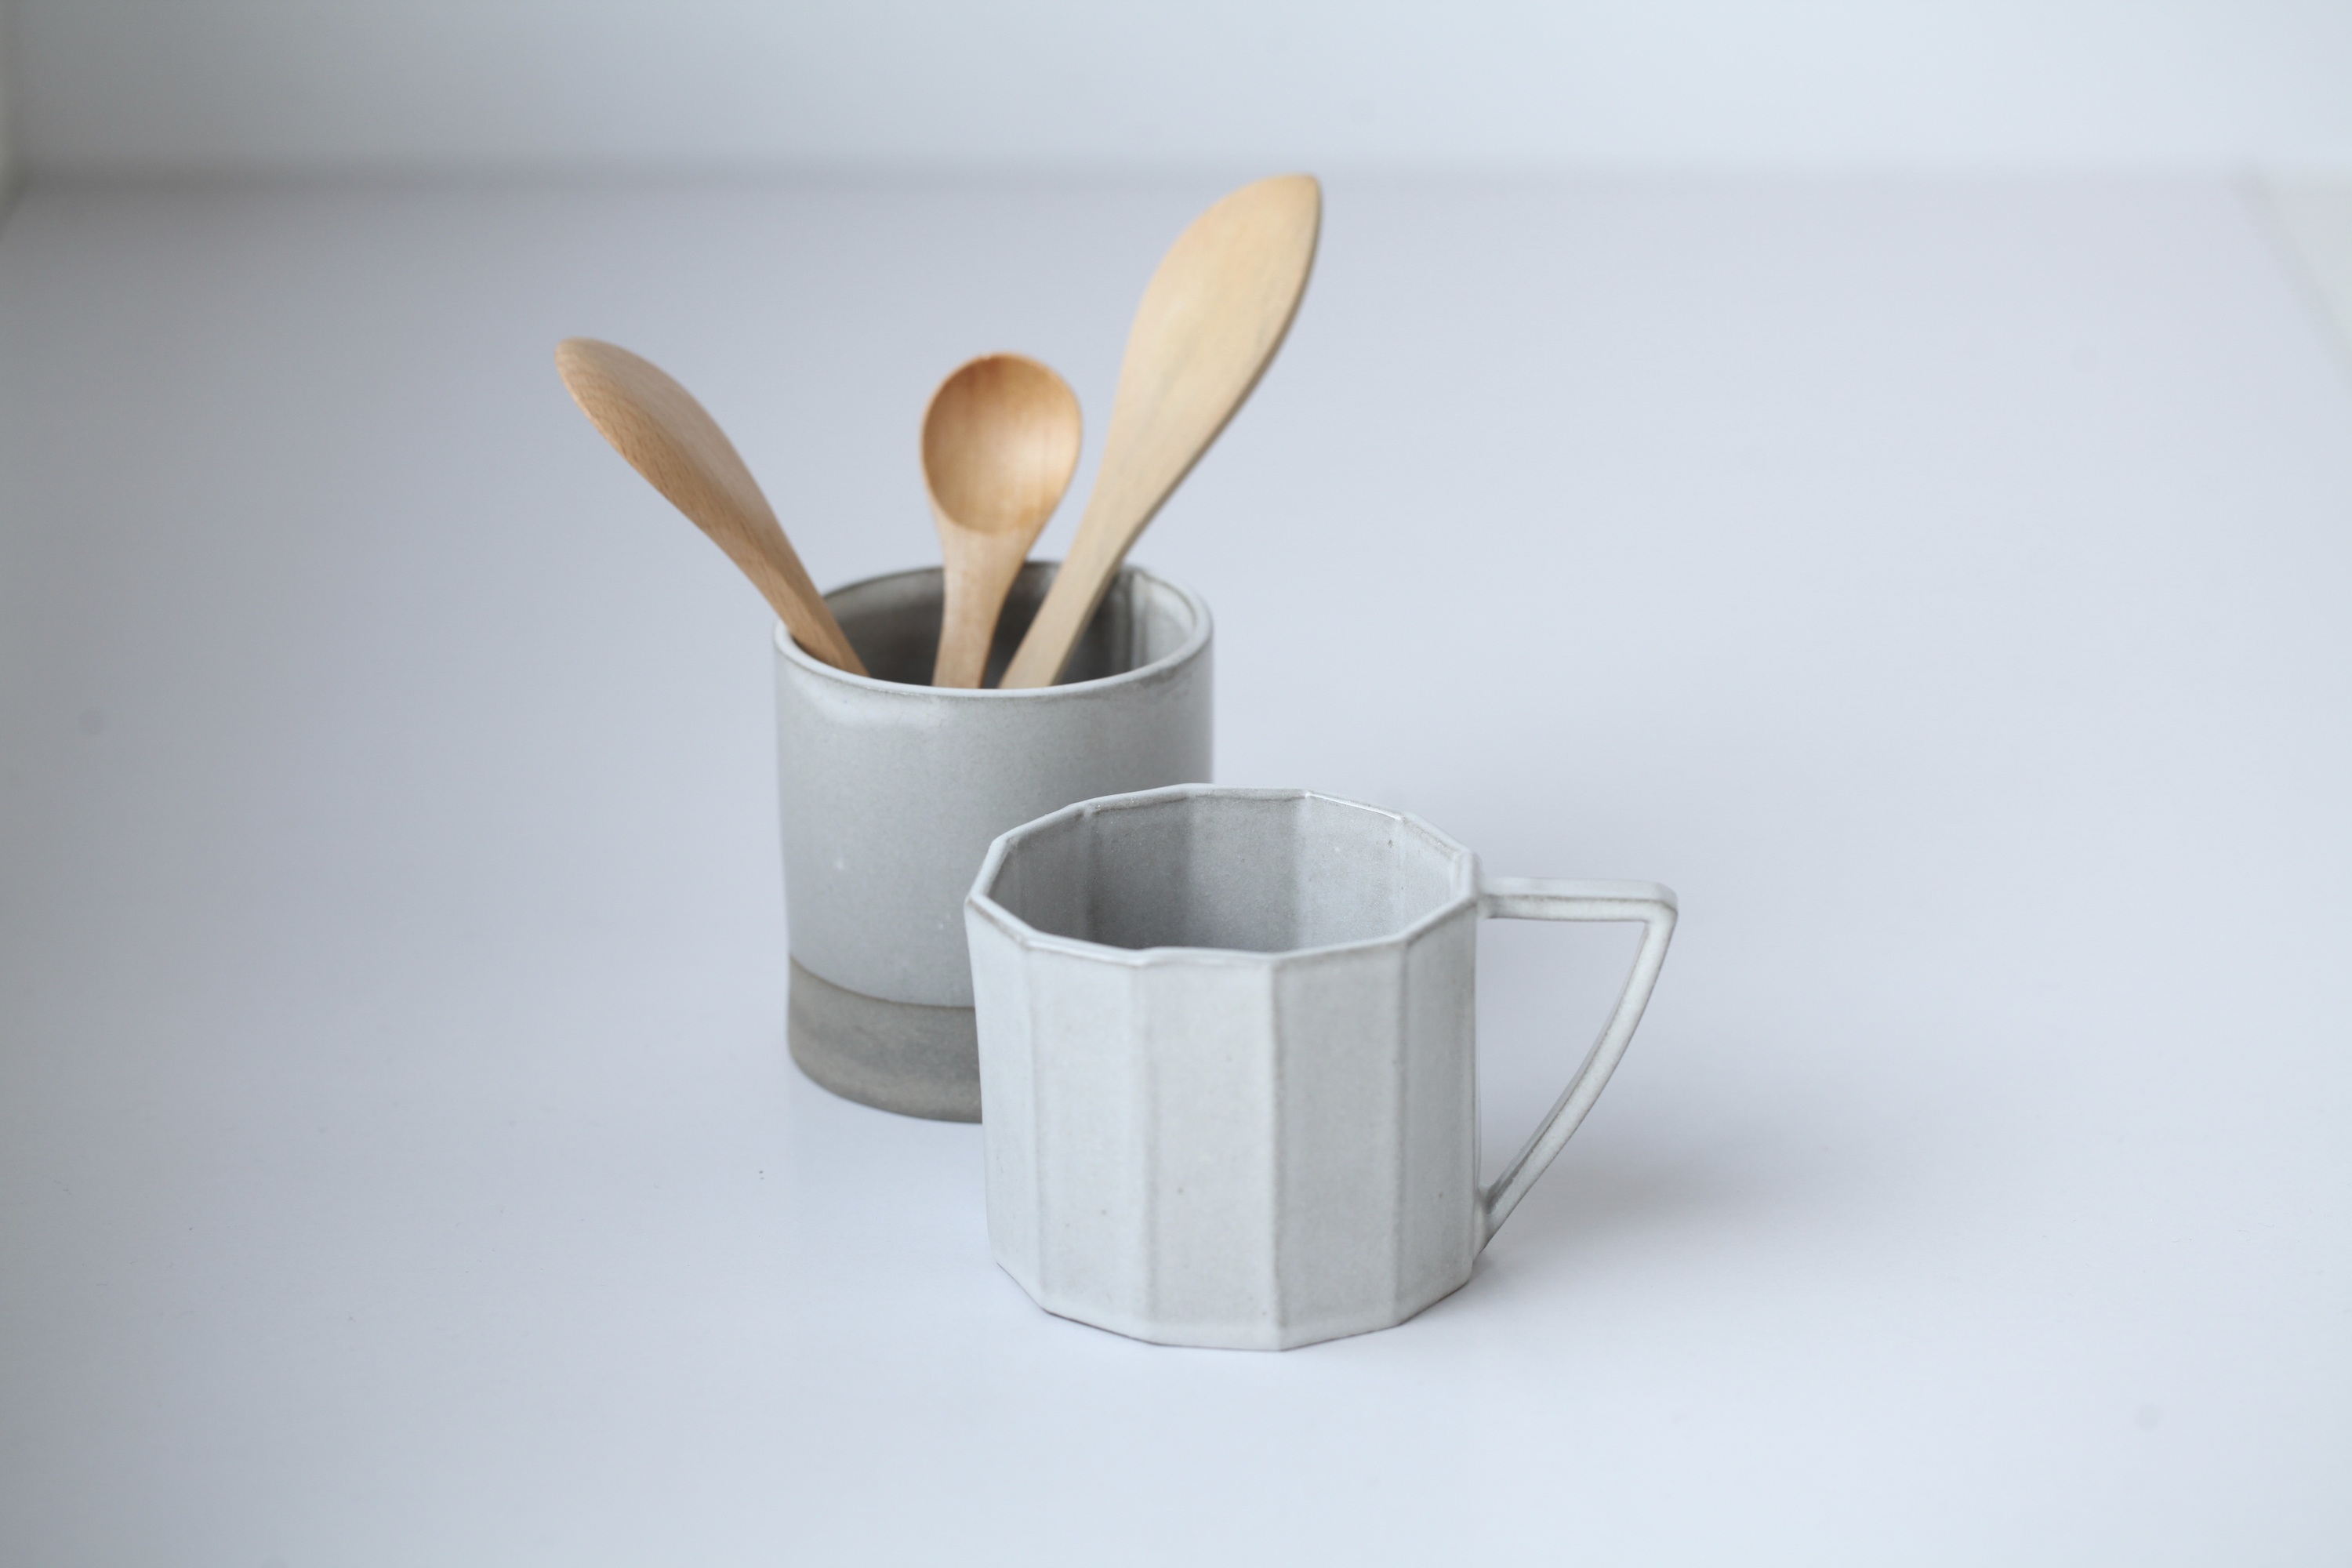 thirty3eleven ceramic cup, The Basket Shop wooden spoon, The Basket Shop wooden butter spreader